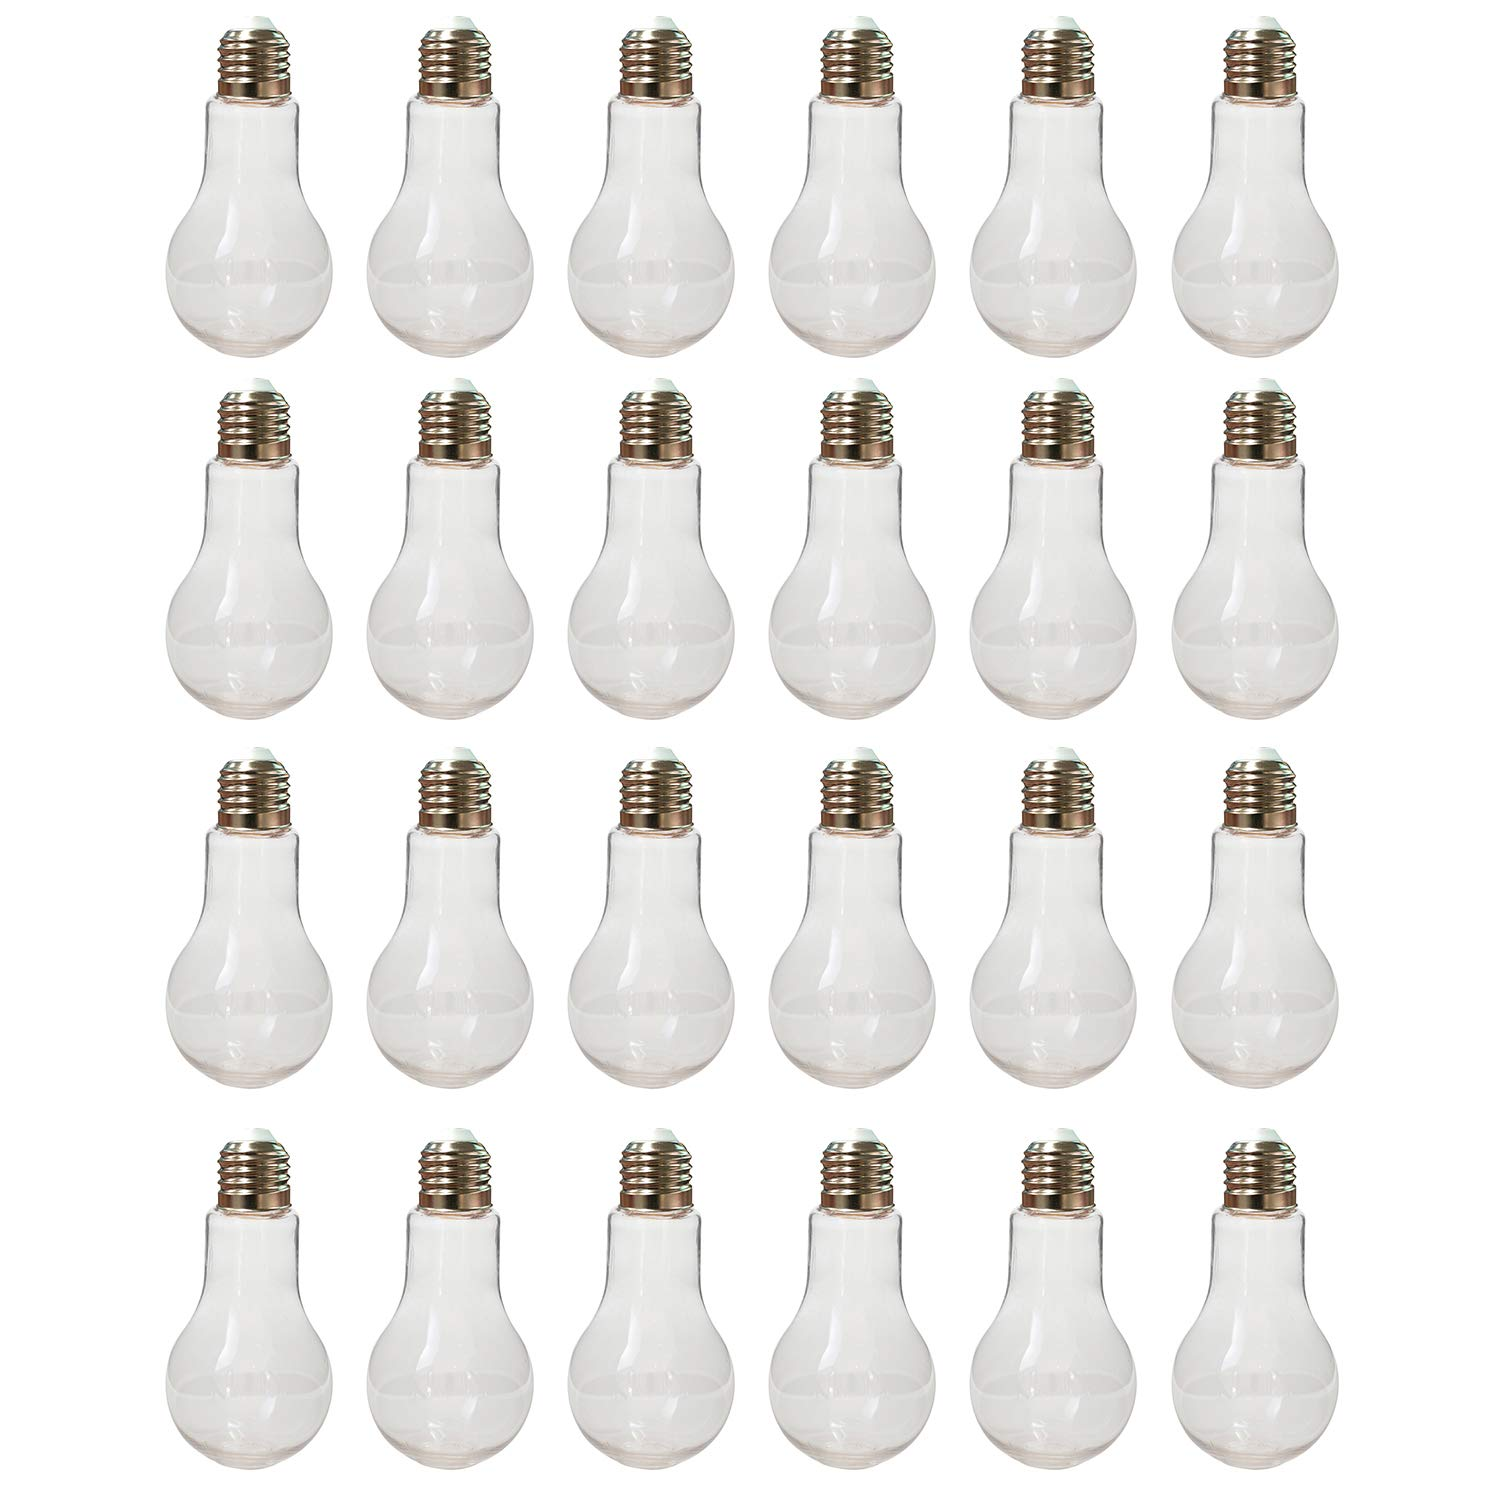 Houseables Fillable Light Bulb, Candy Container, Plastic, 100 ML, 1'' W x 4.9'' L, 24 Pack, Clear, Fake Lightbulb, Jar for Drinking, Christmas Ornaments, Party Favors, Crafts, Decorations, Cups by Houseables